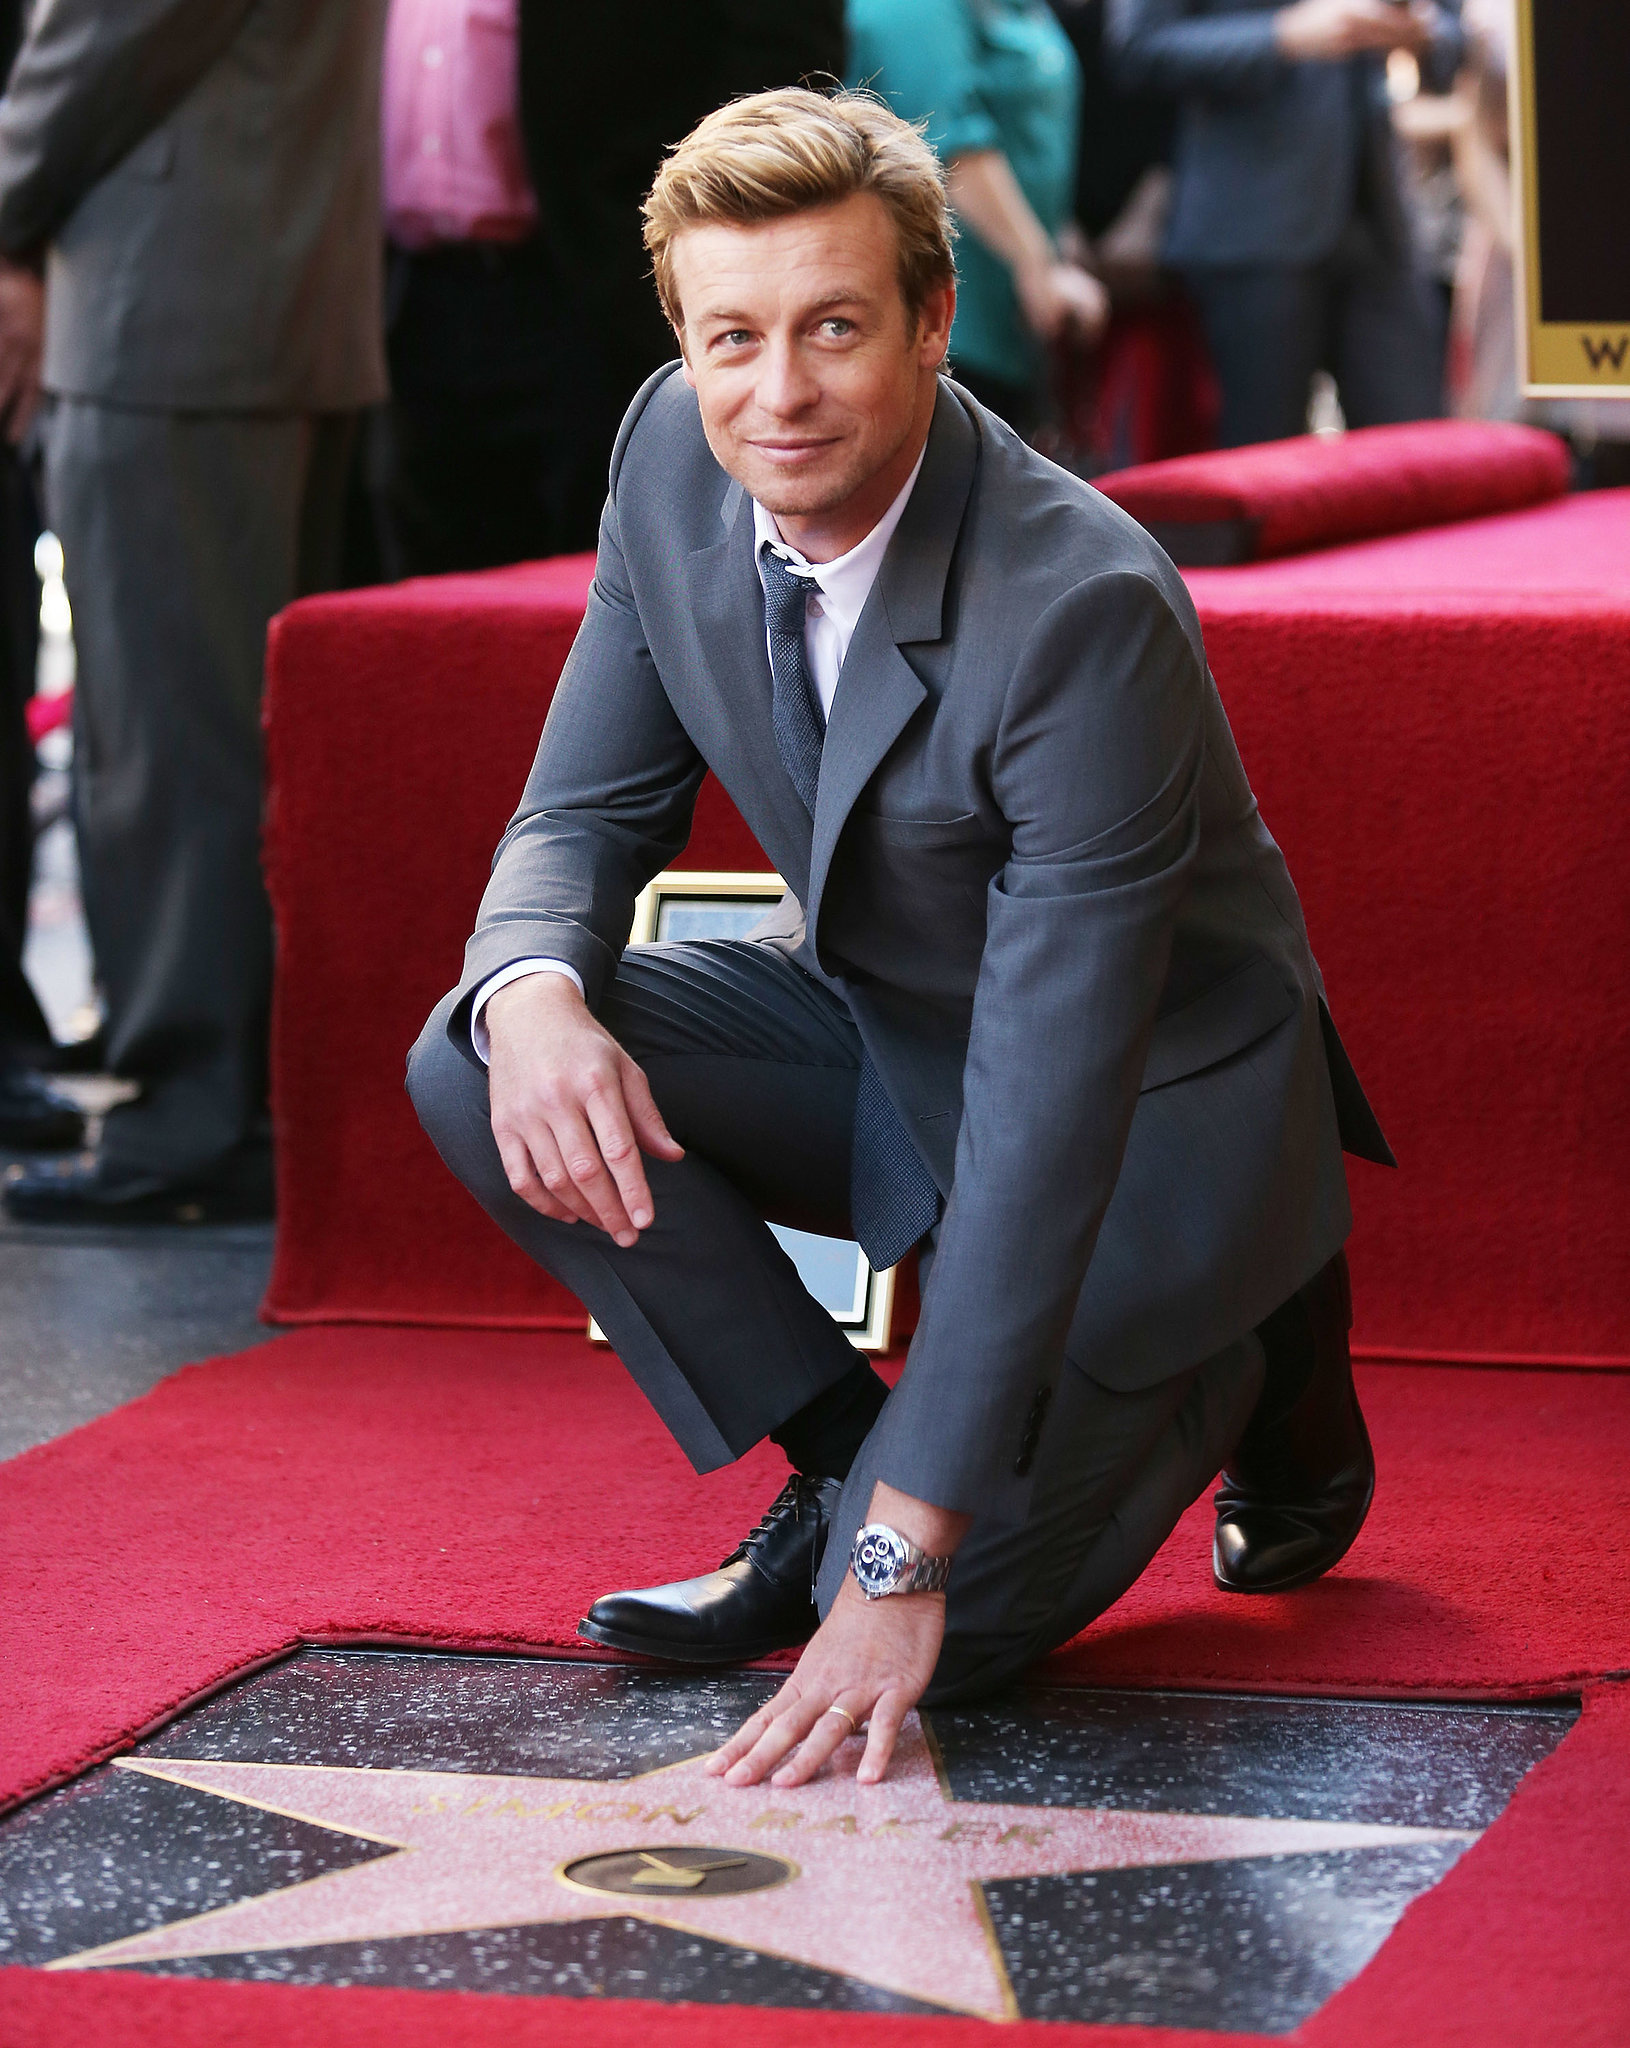 Simon Baker is basically your perfect man. Here he is looking devastatingly hot with his star on the Hollywood Walk of Fame.